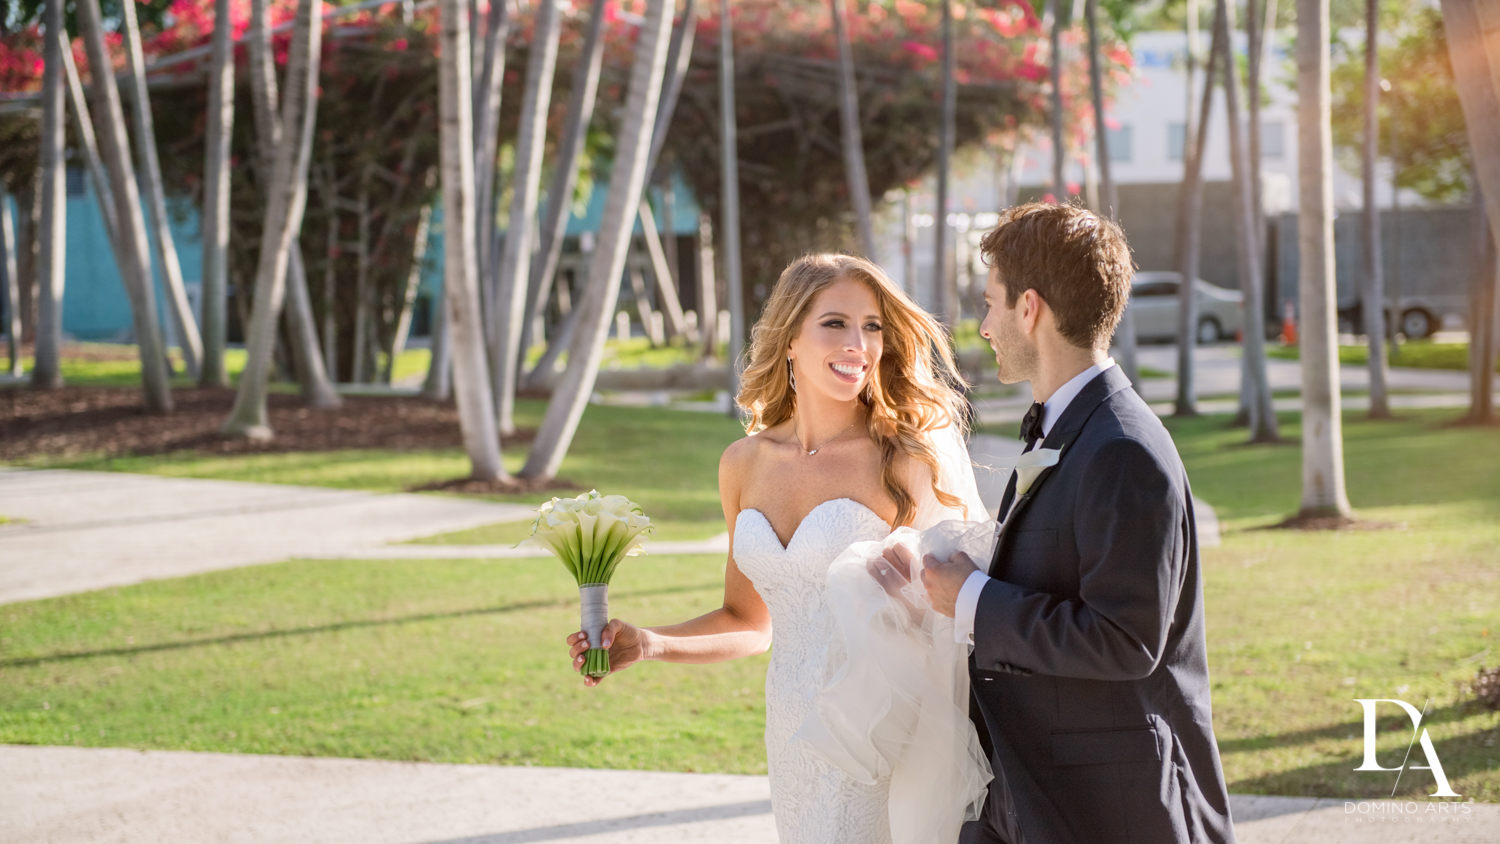 beautiful miami day at Tropical Luxury Jewish Wedding in Miami Beach by Domino Arts Photography